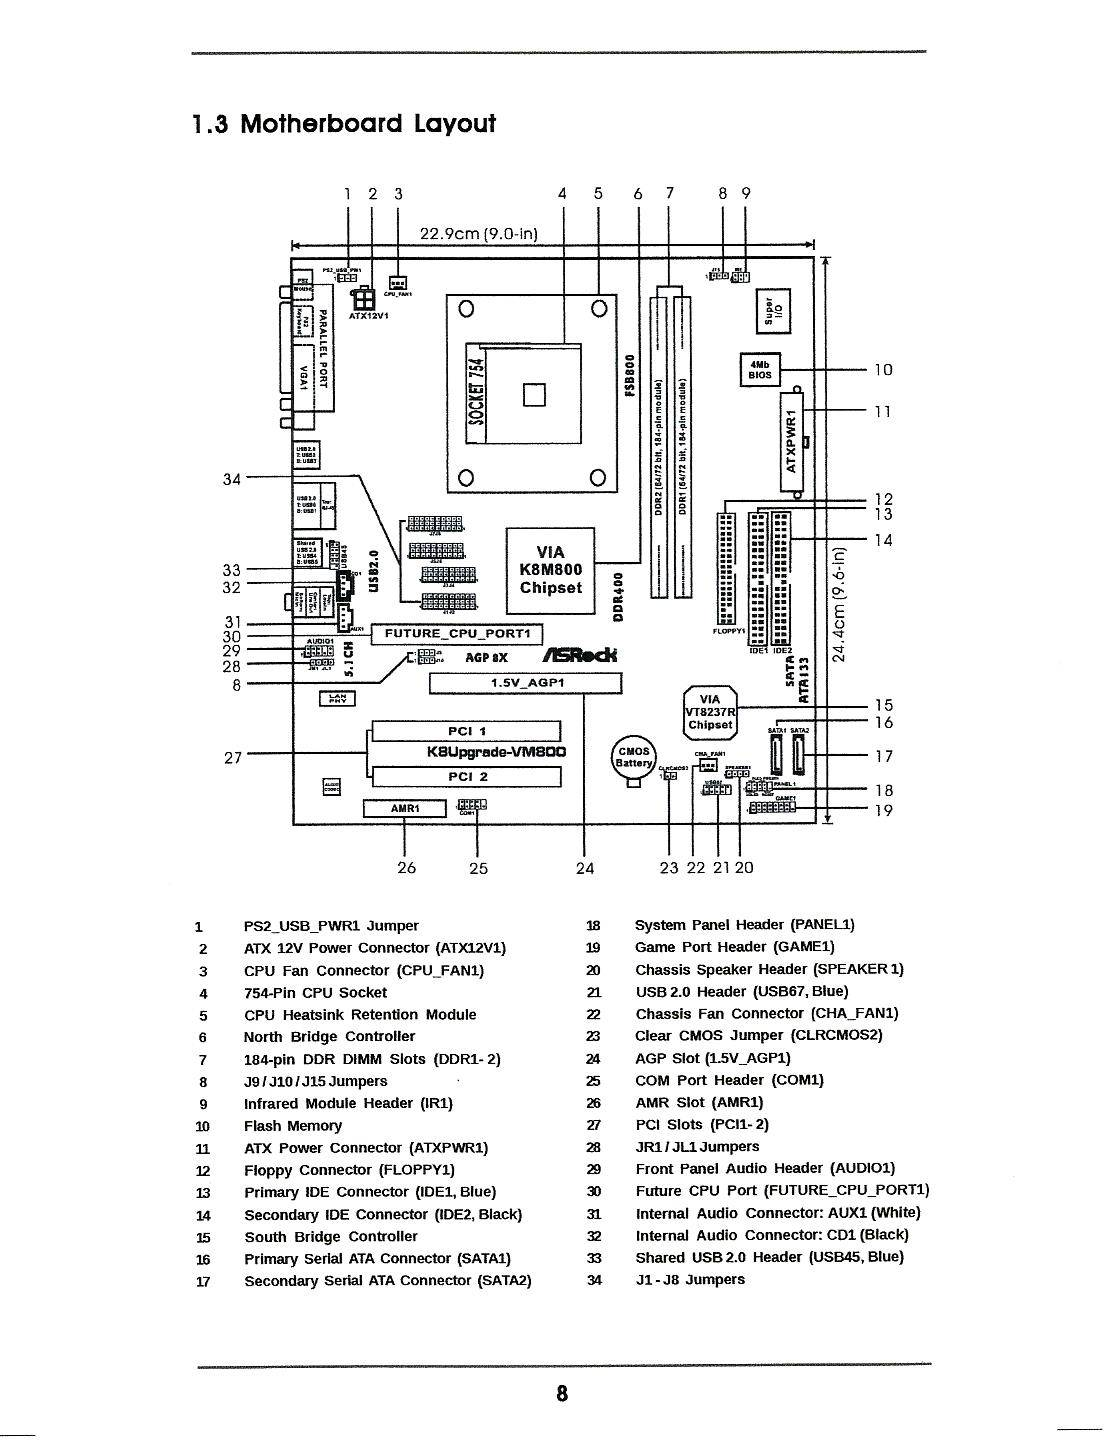 Motherboard Wiring Diagram